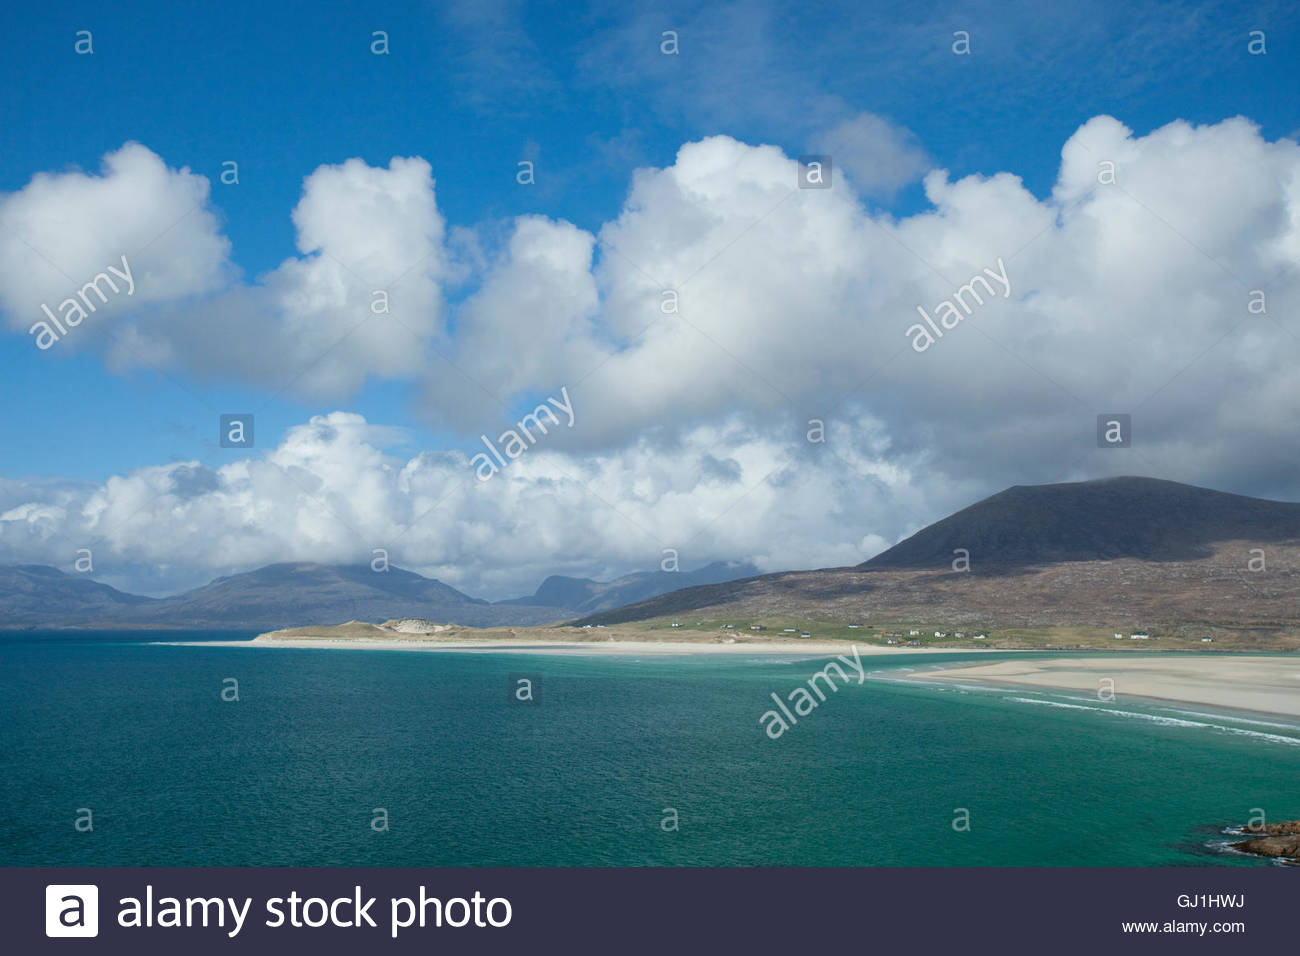 Traigh Sheileboist at Seilebost, looking towards Luskentyre, Isle Of Harris, Outer Hebrides, Scotland. - Stock Image